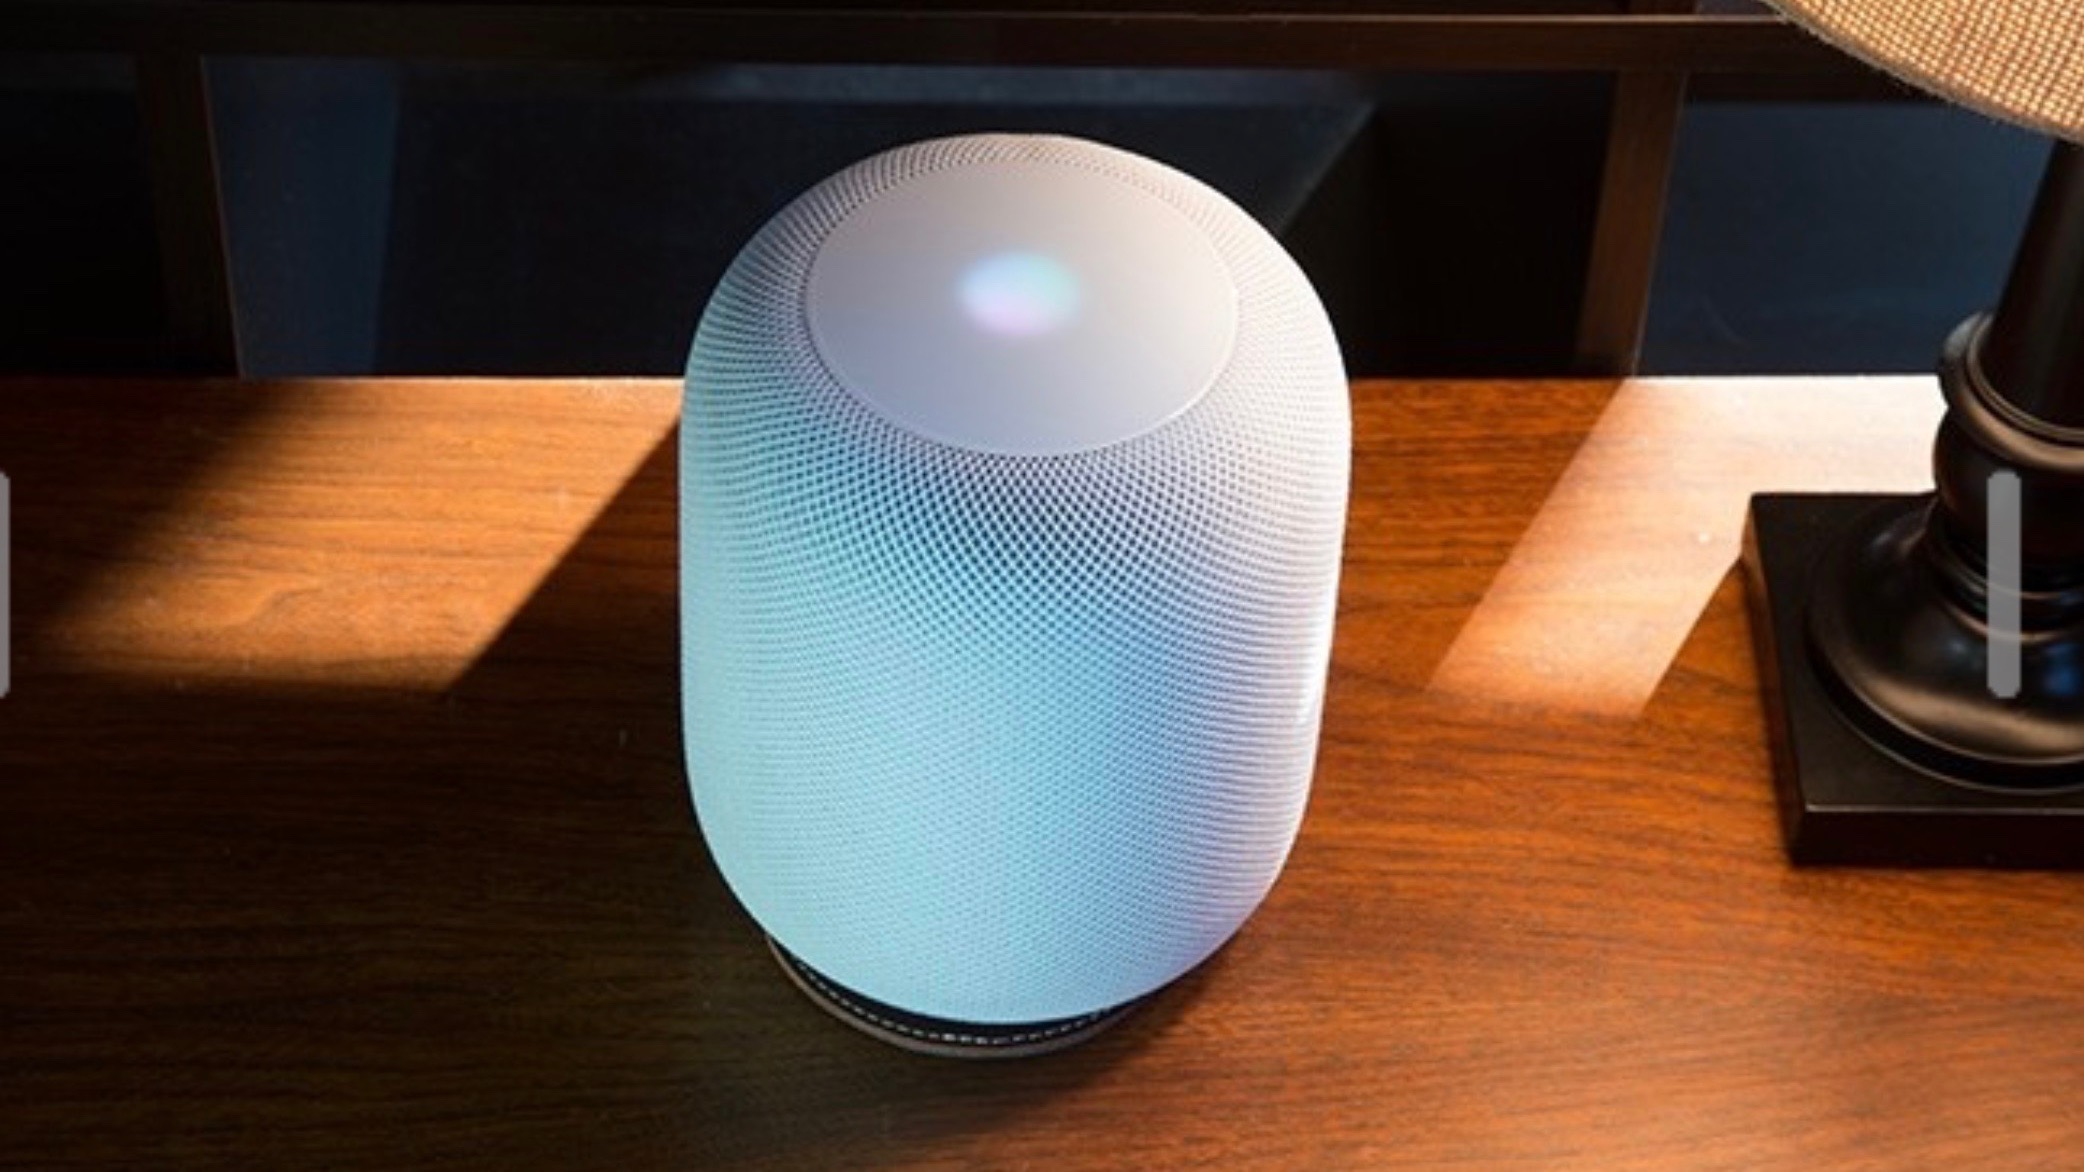 How to AirPlay to HomePod without an active internet connection